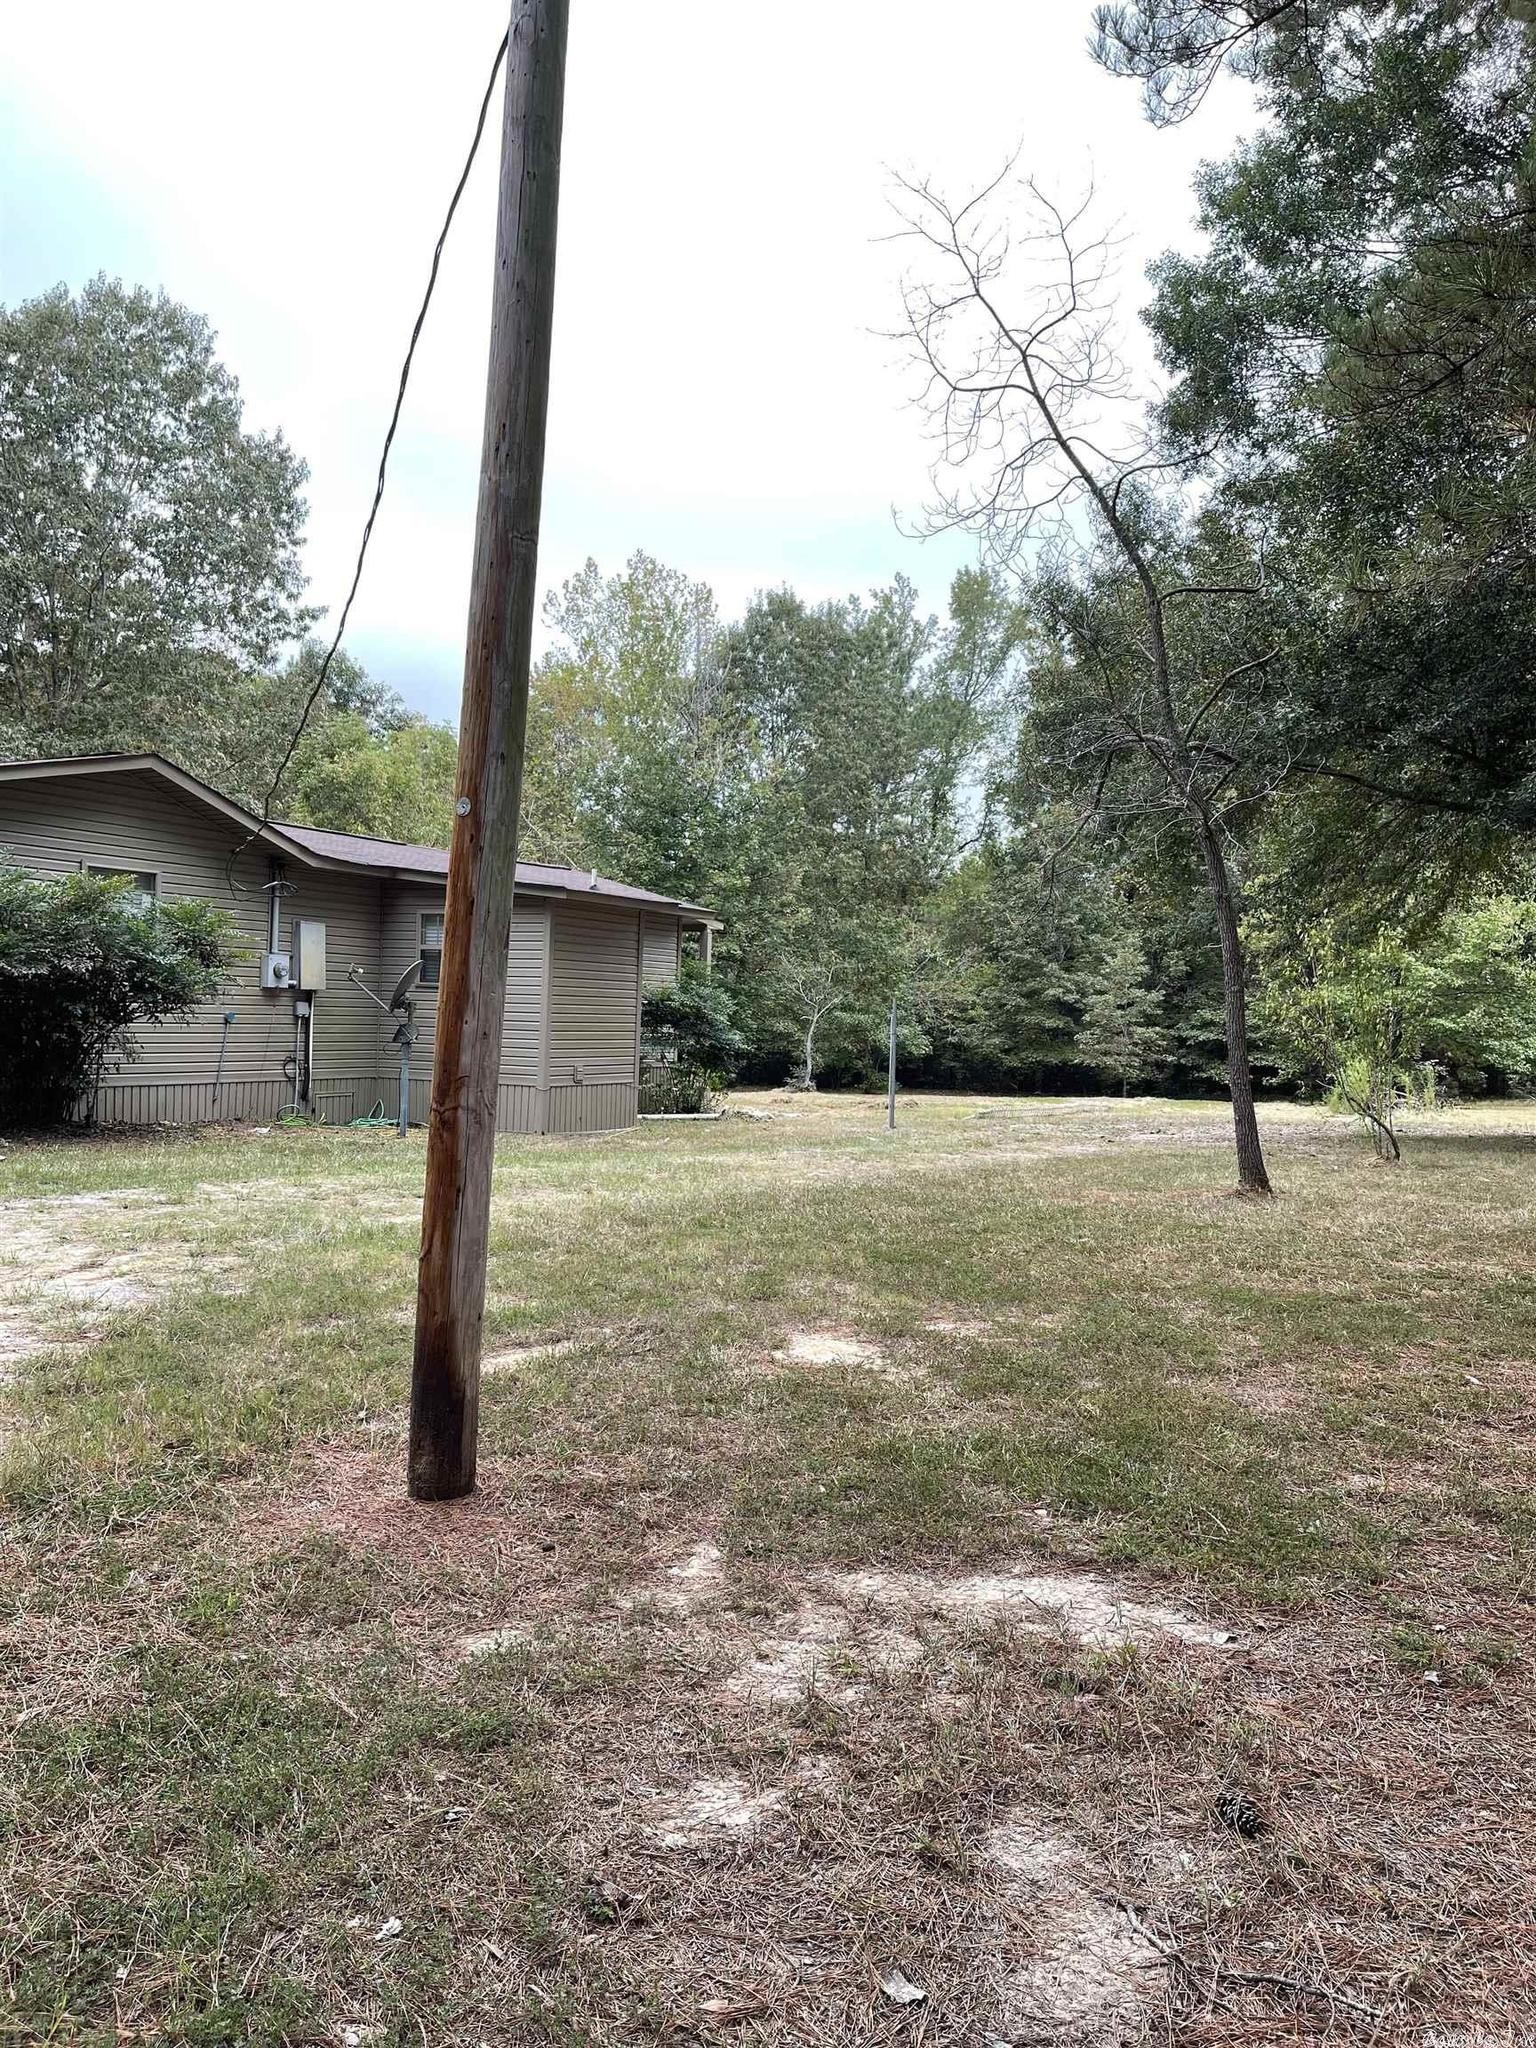 3-Bedroom House In Rison